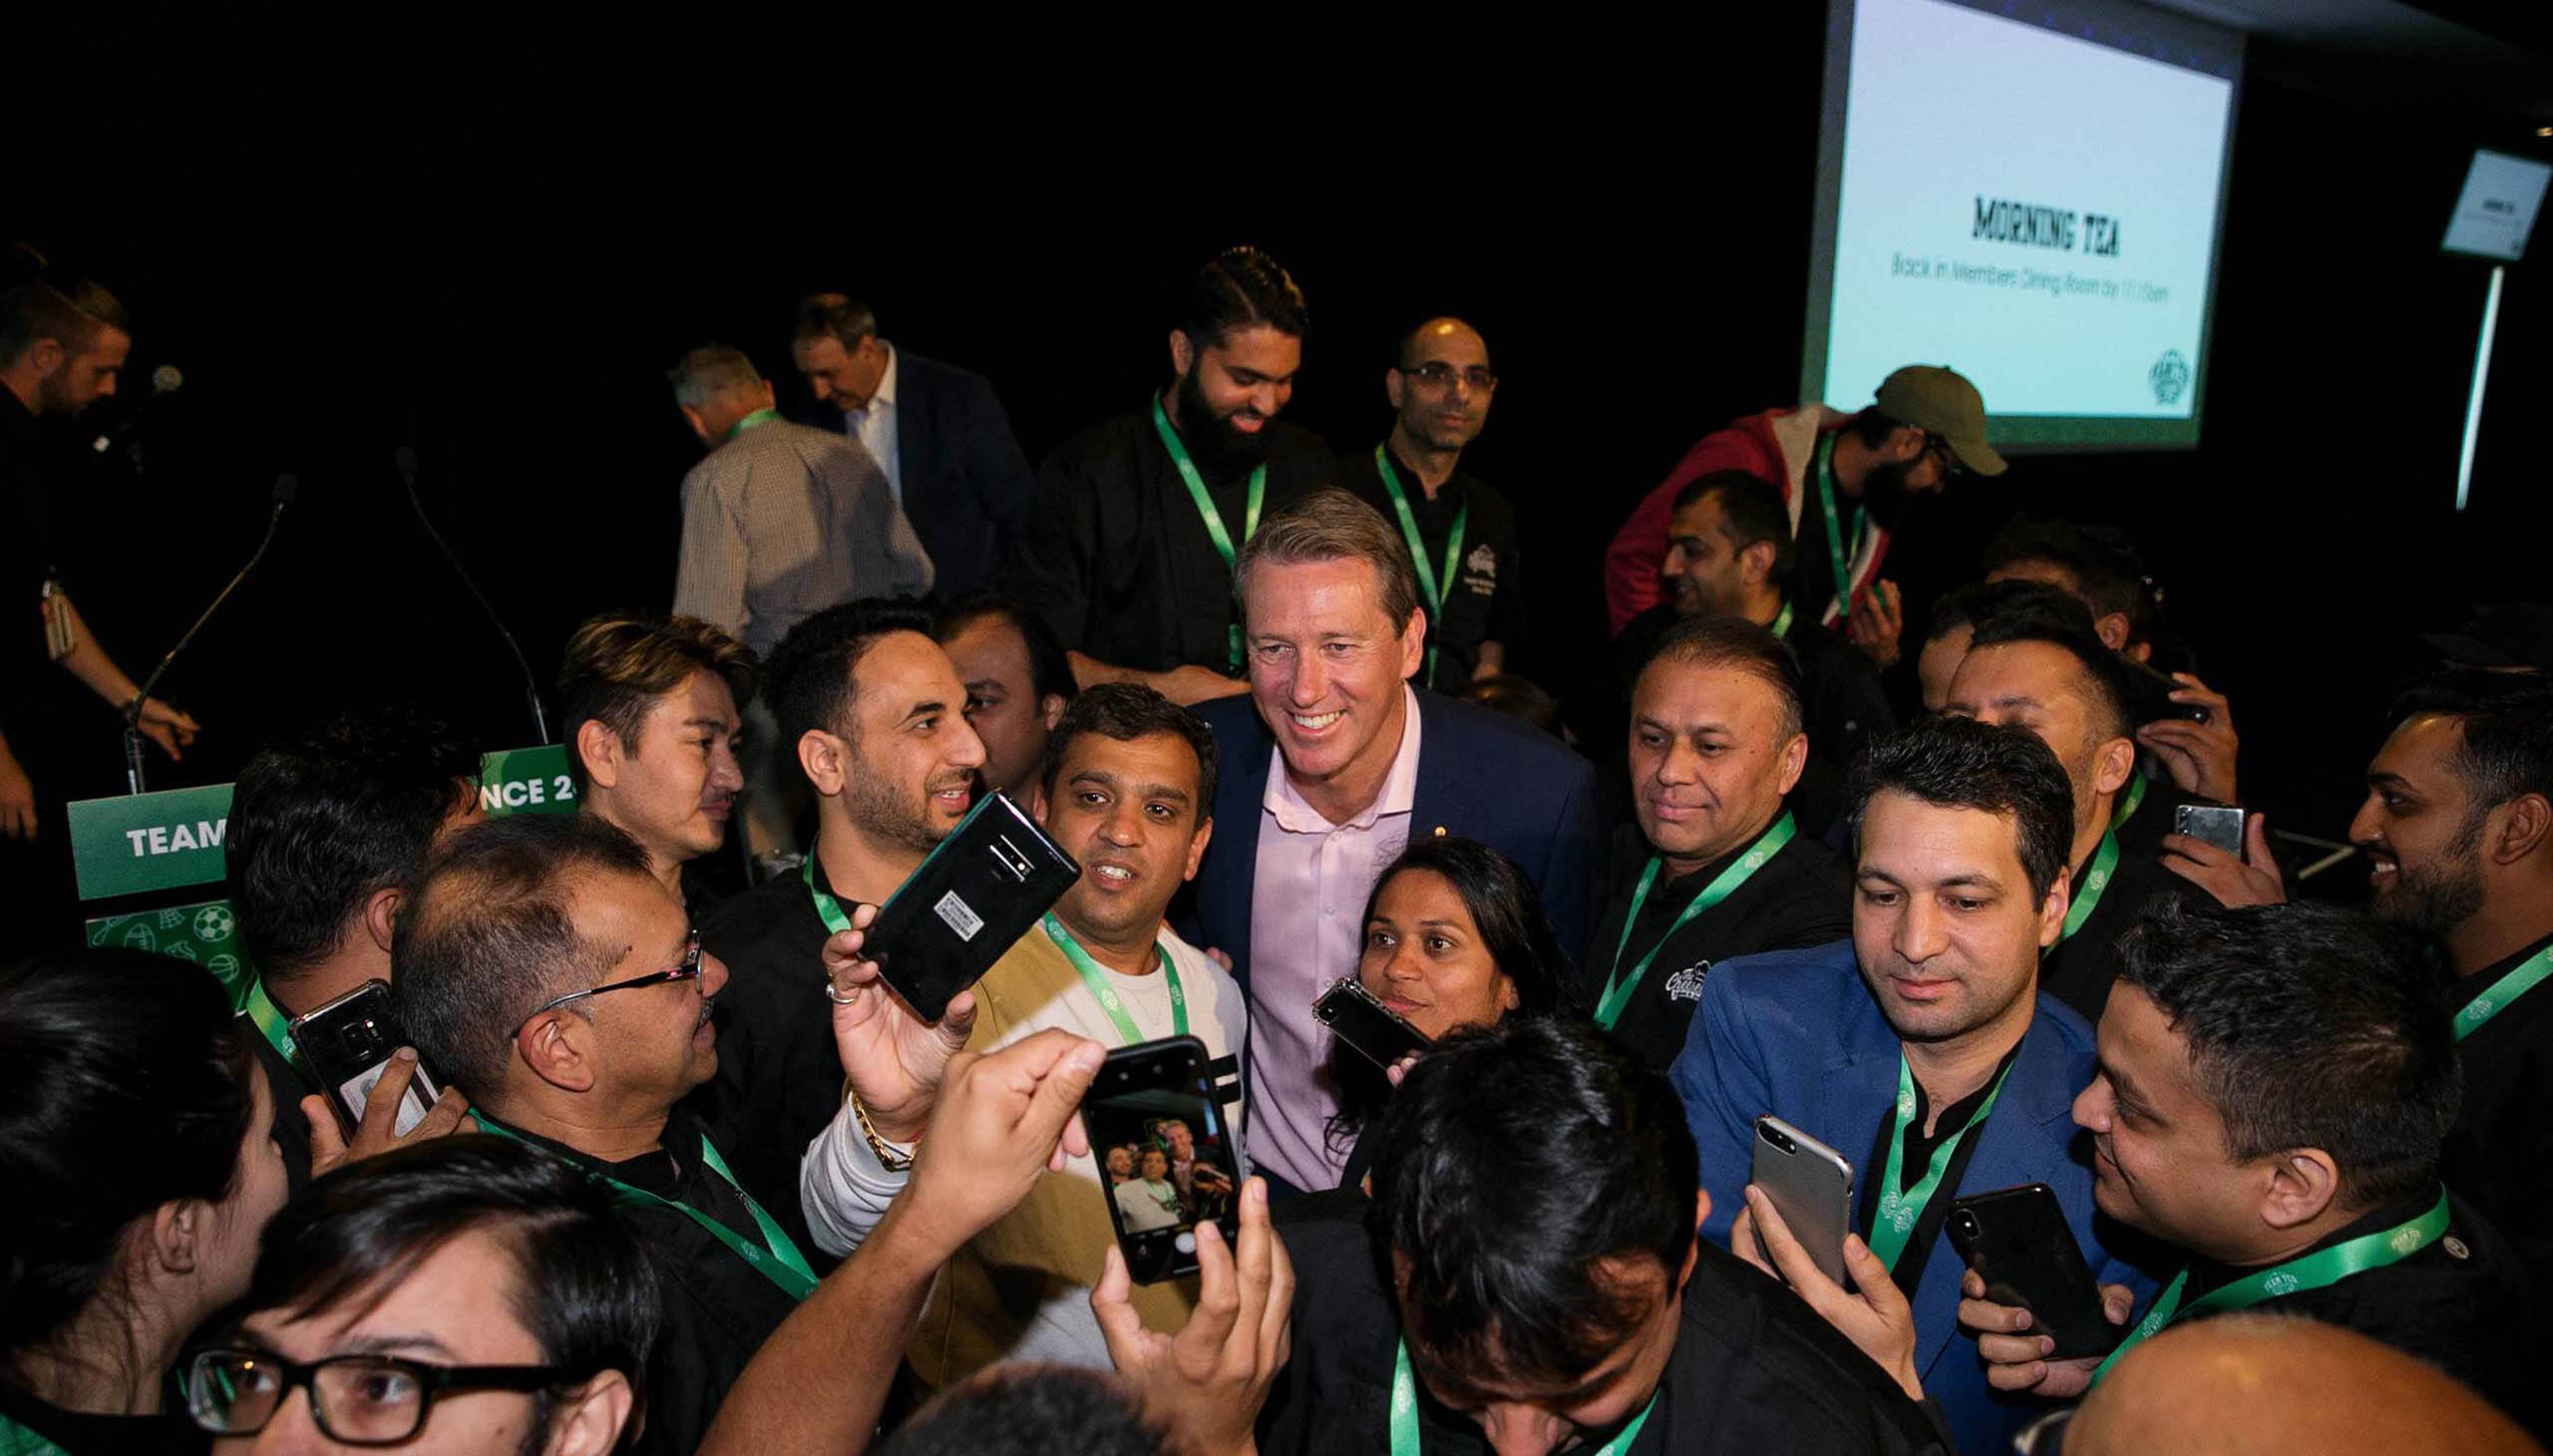 Cricketer Glenn McGrath with fans at the Cheesecake Shop Franchise Conference